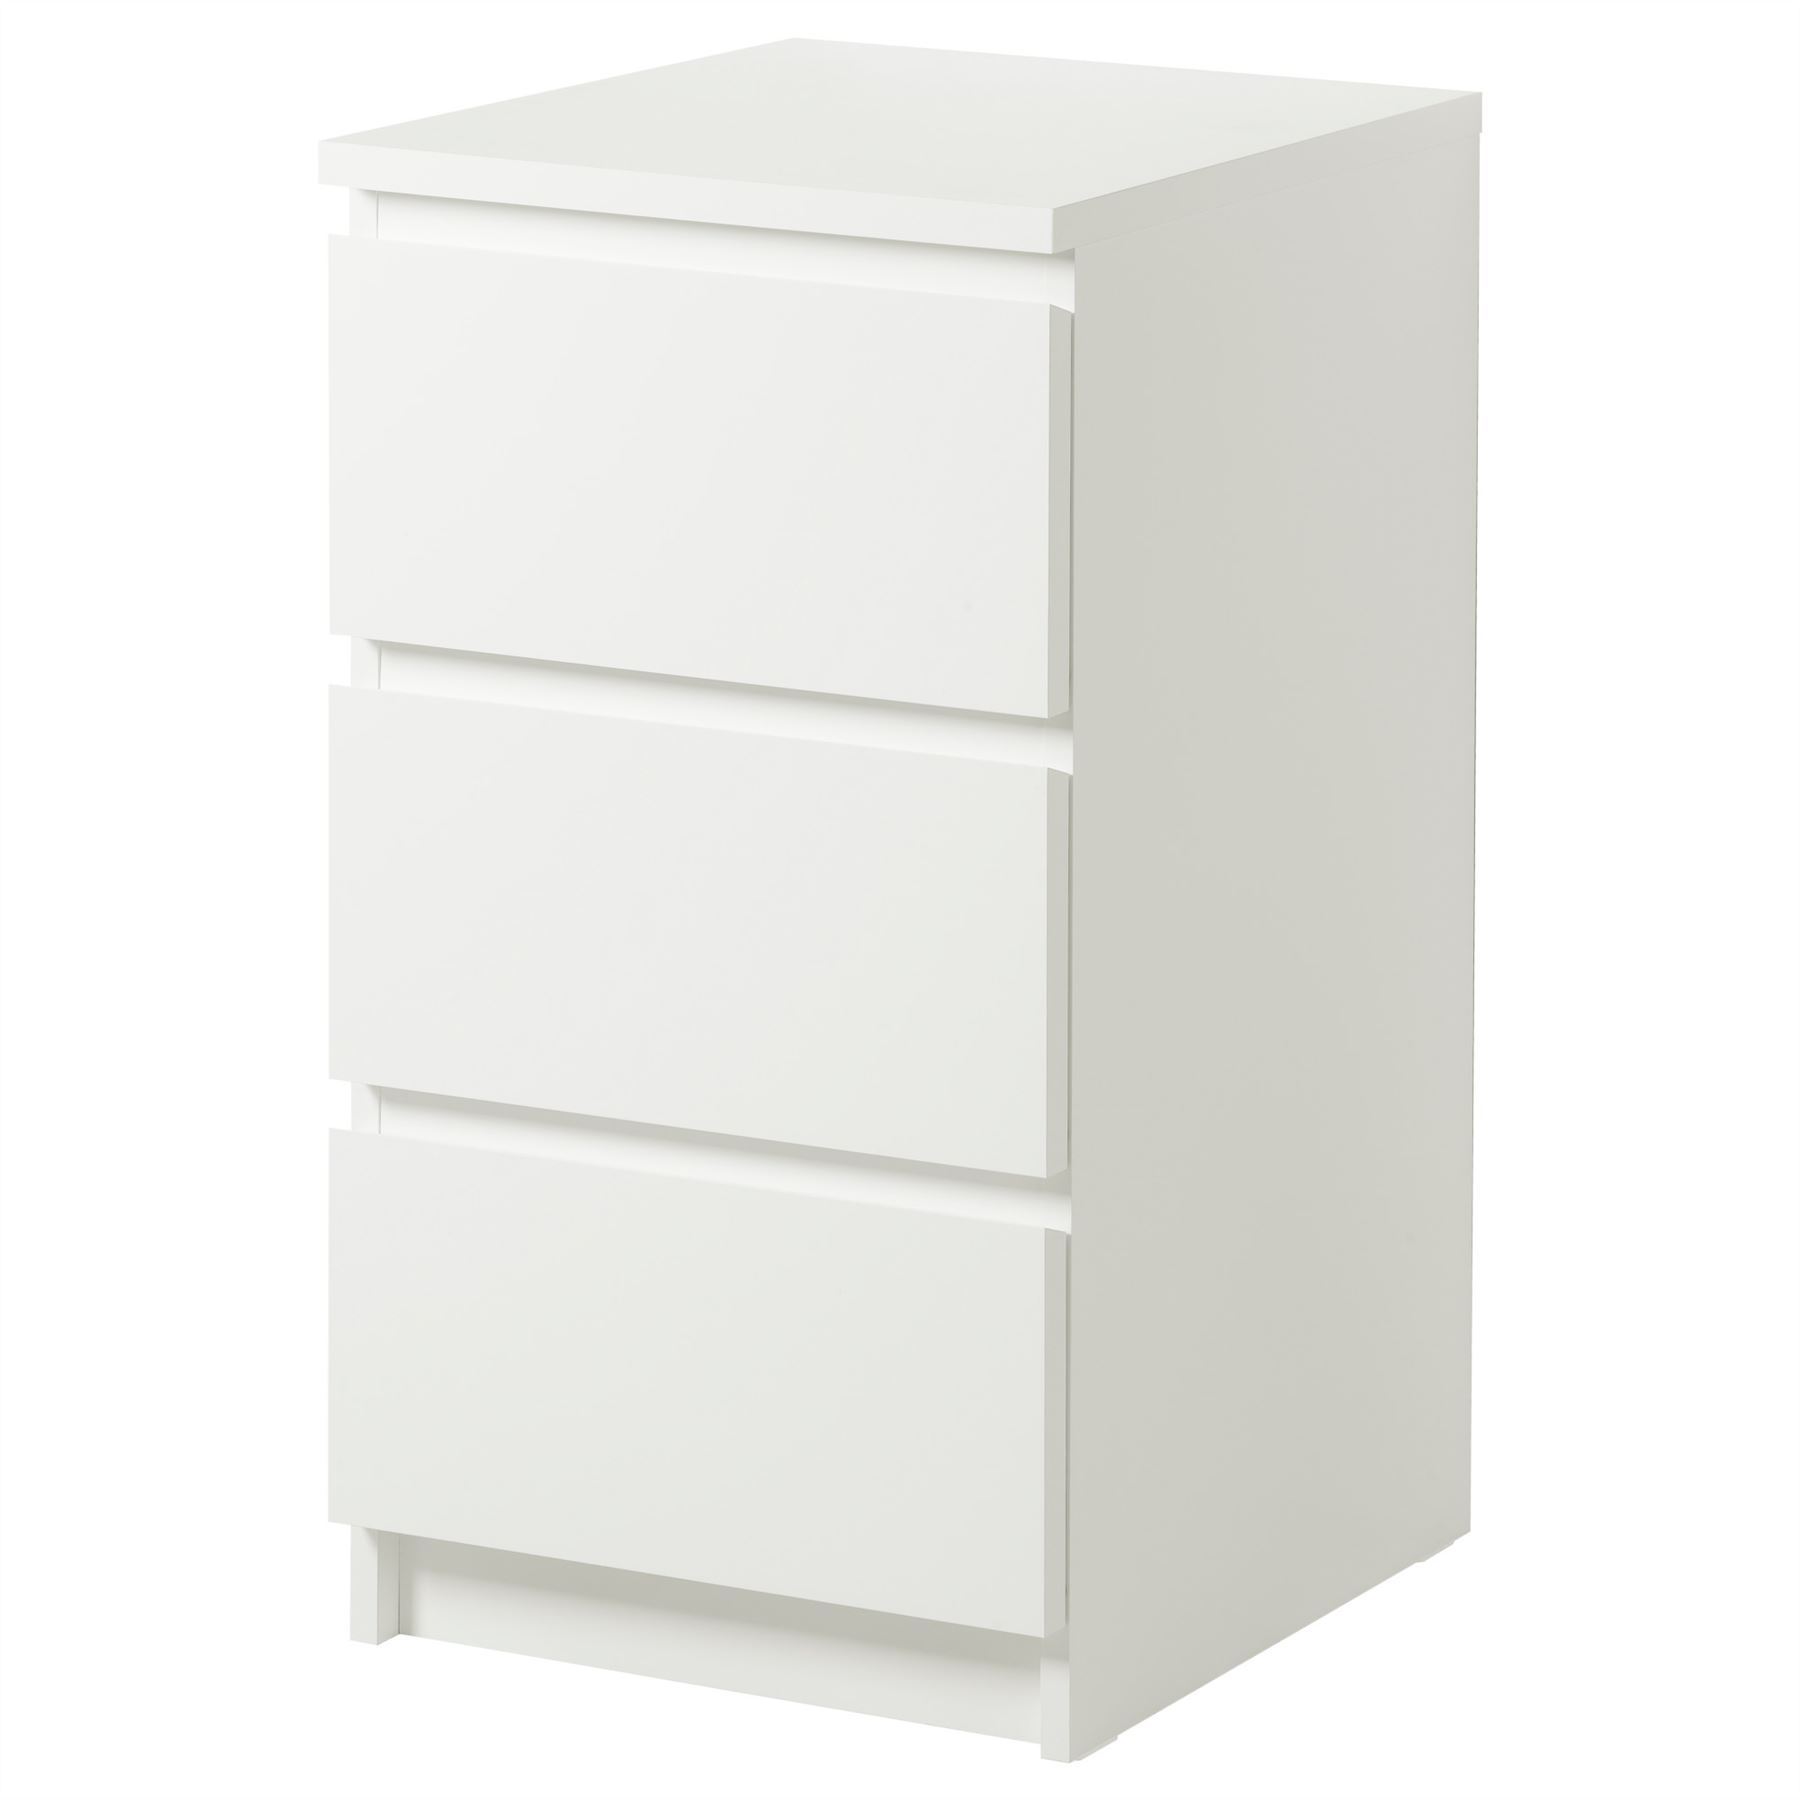 ikea malm chest of 3 drawers 40x78cm white bedroom furniture ebay. Black Bedroom Furniture Sets. Home Design Ideas